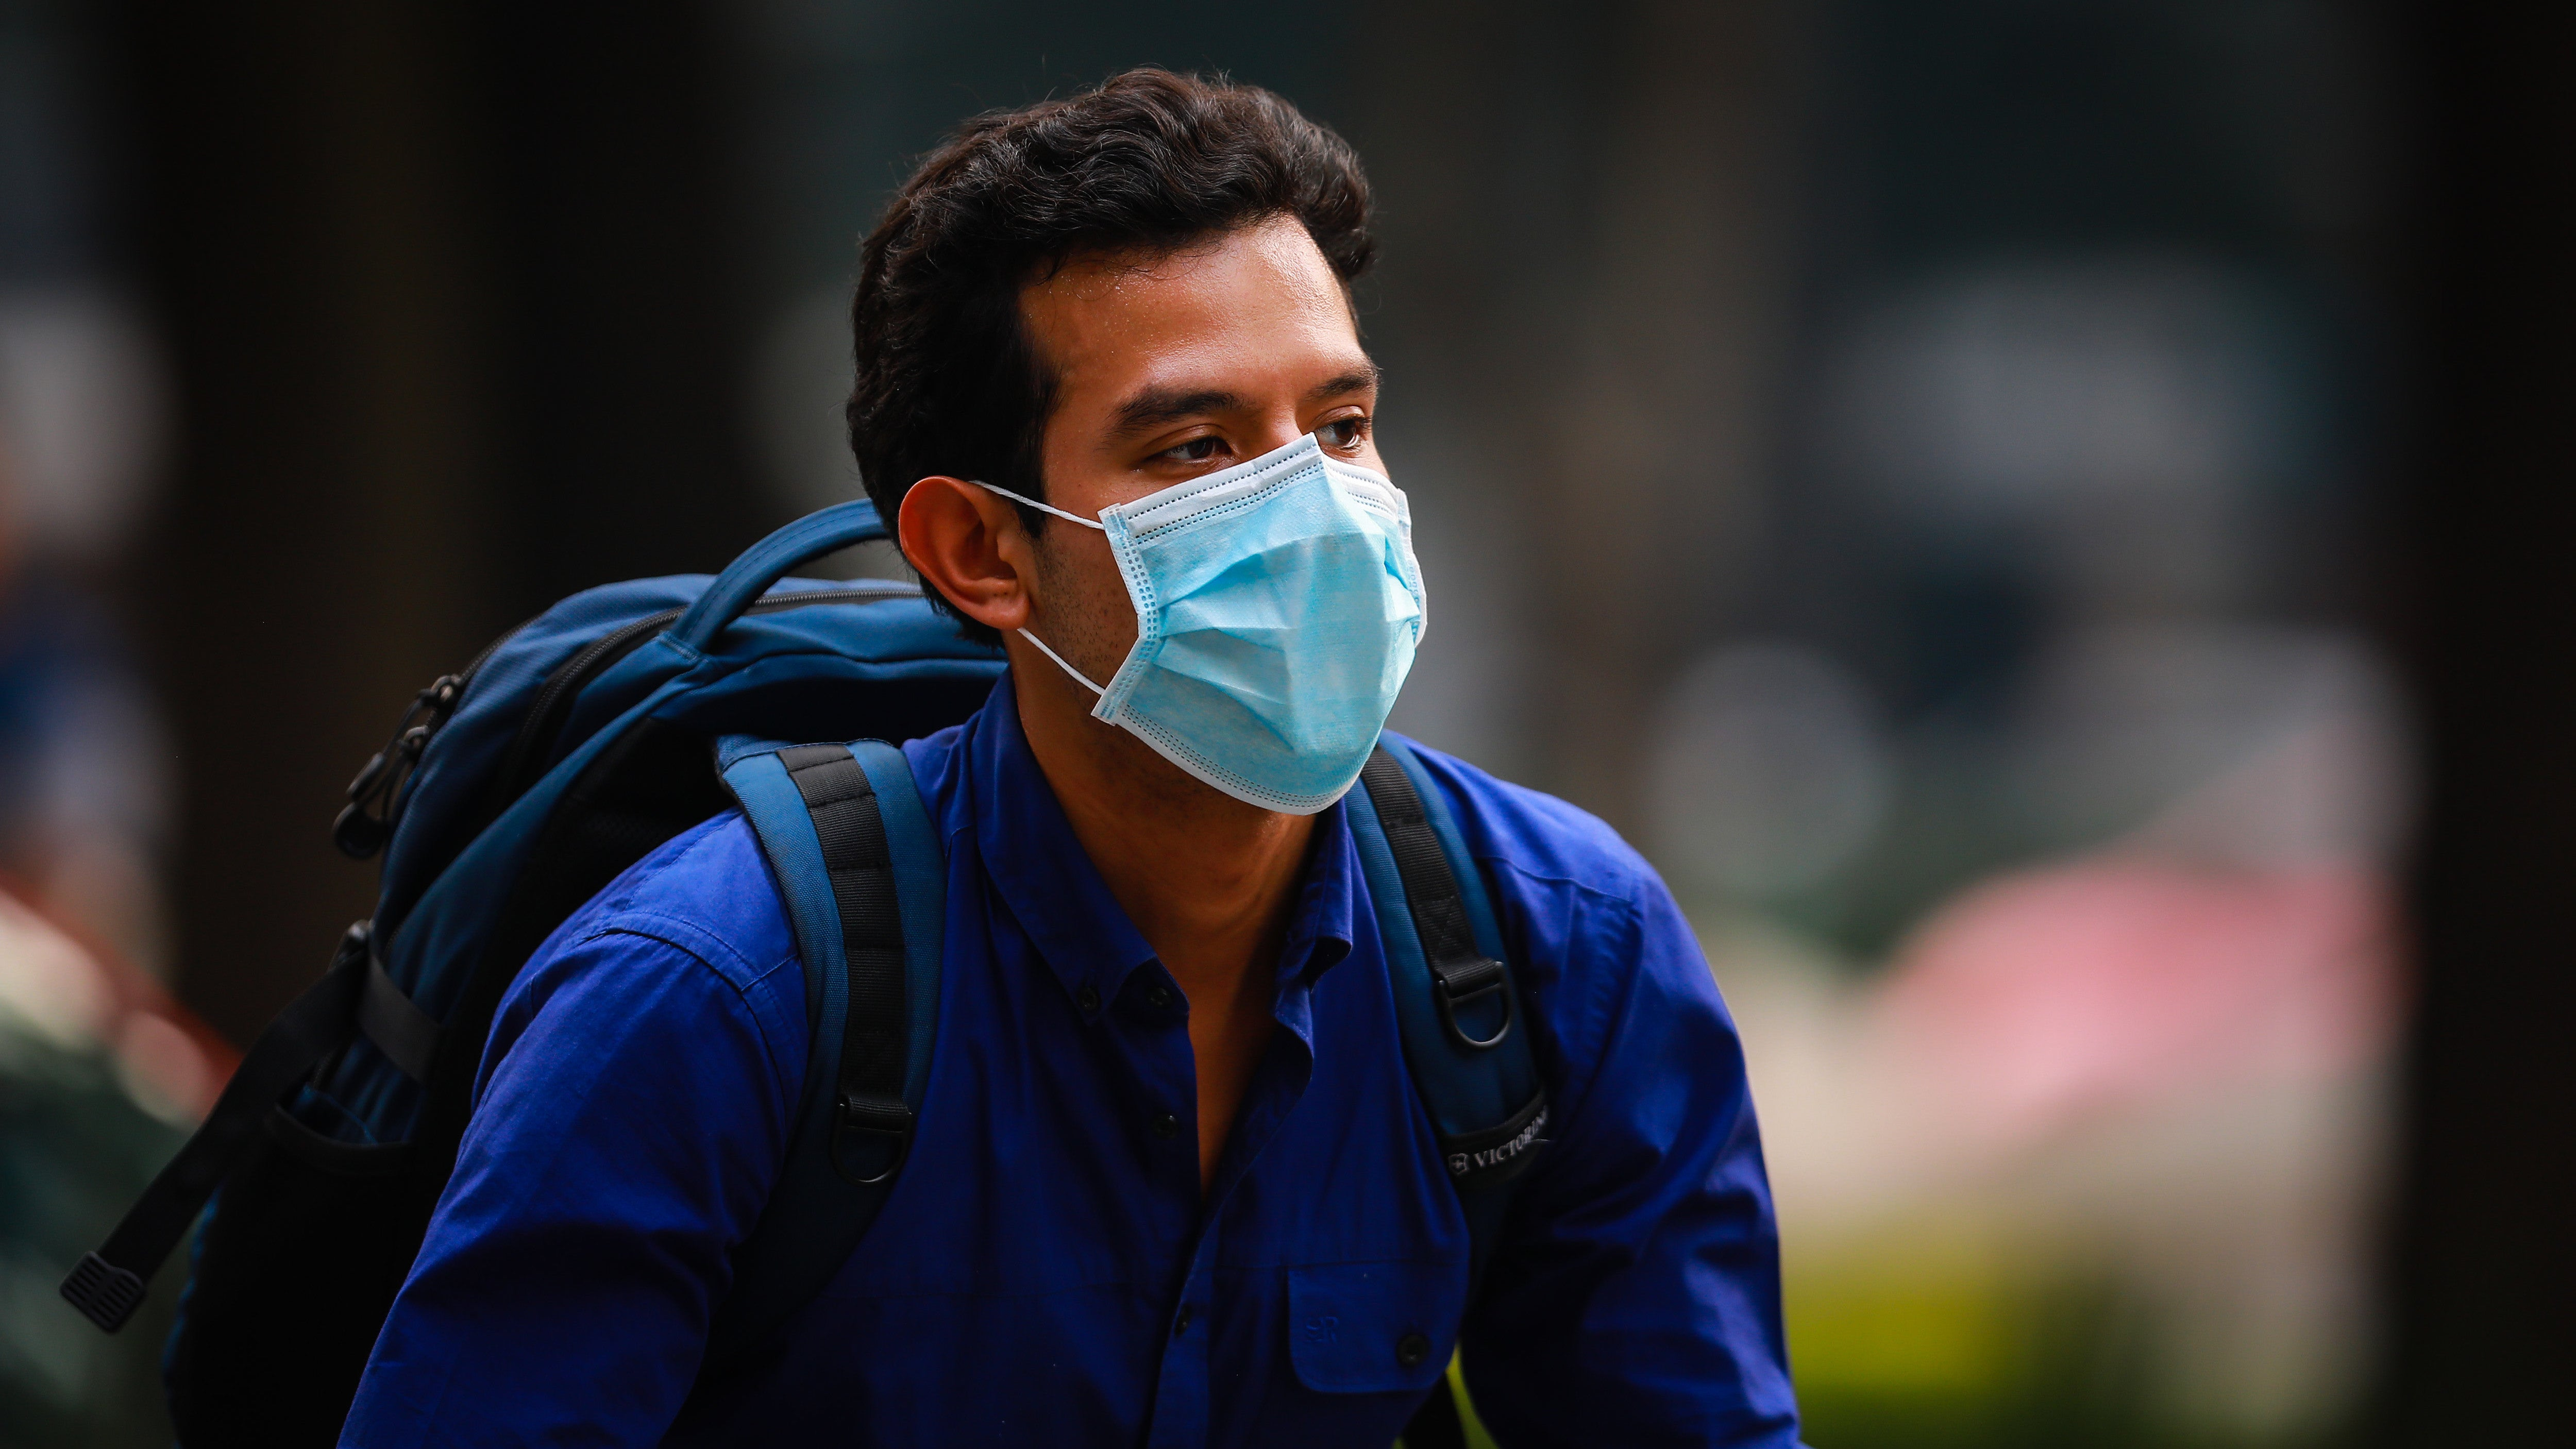 How Much Do Face Masks Help Prevent The Spread Of Viruses?